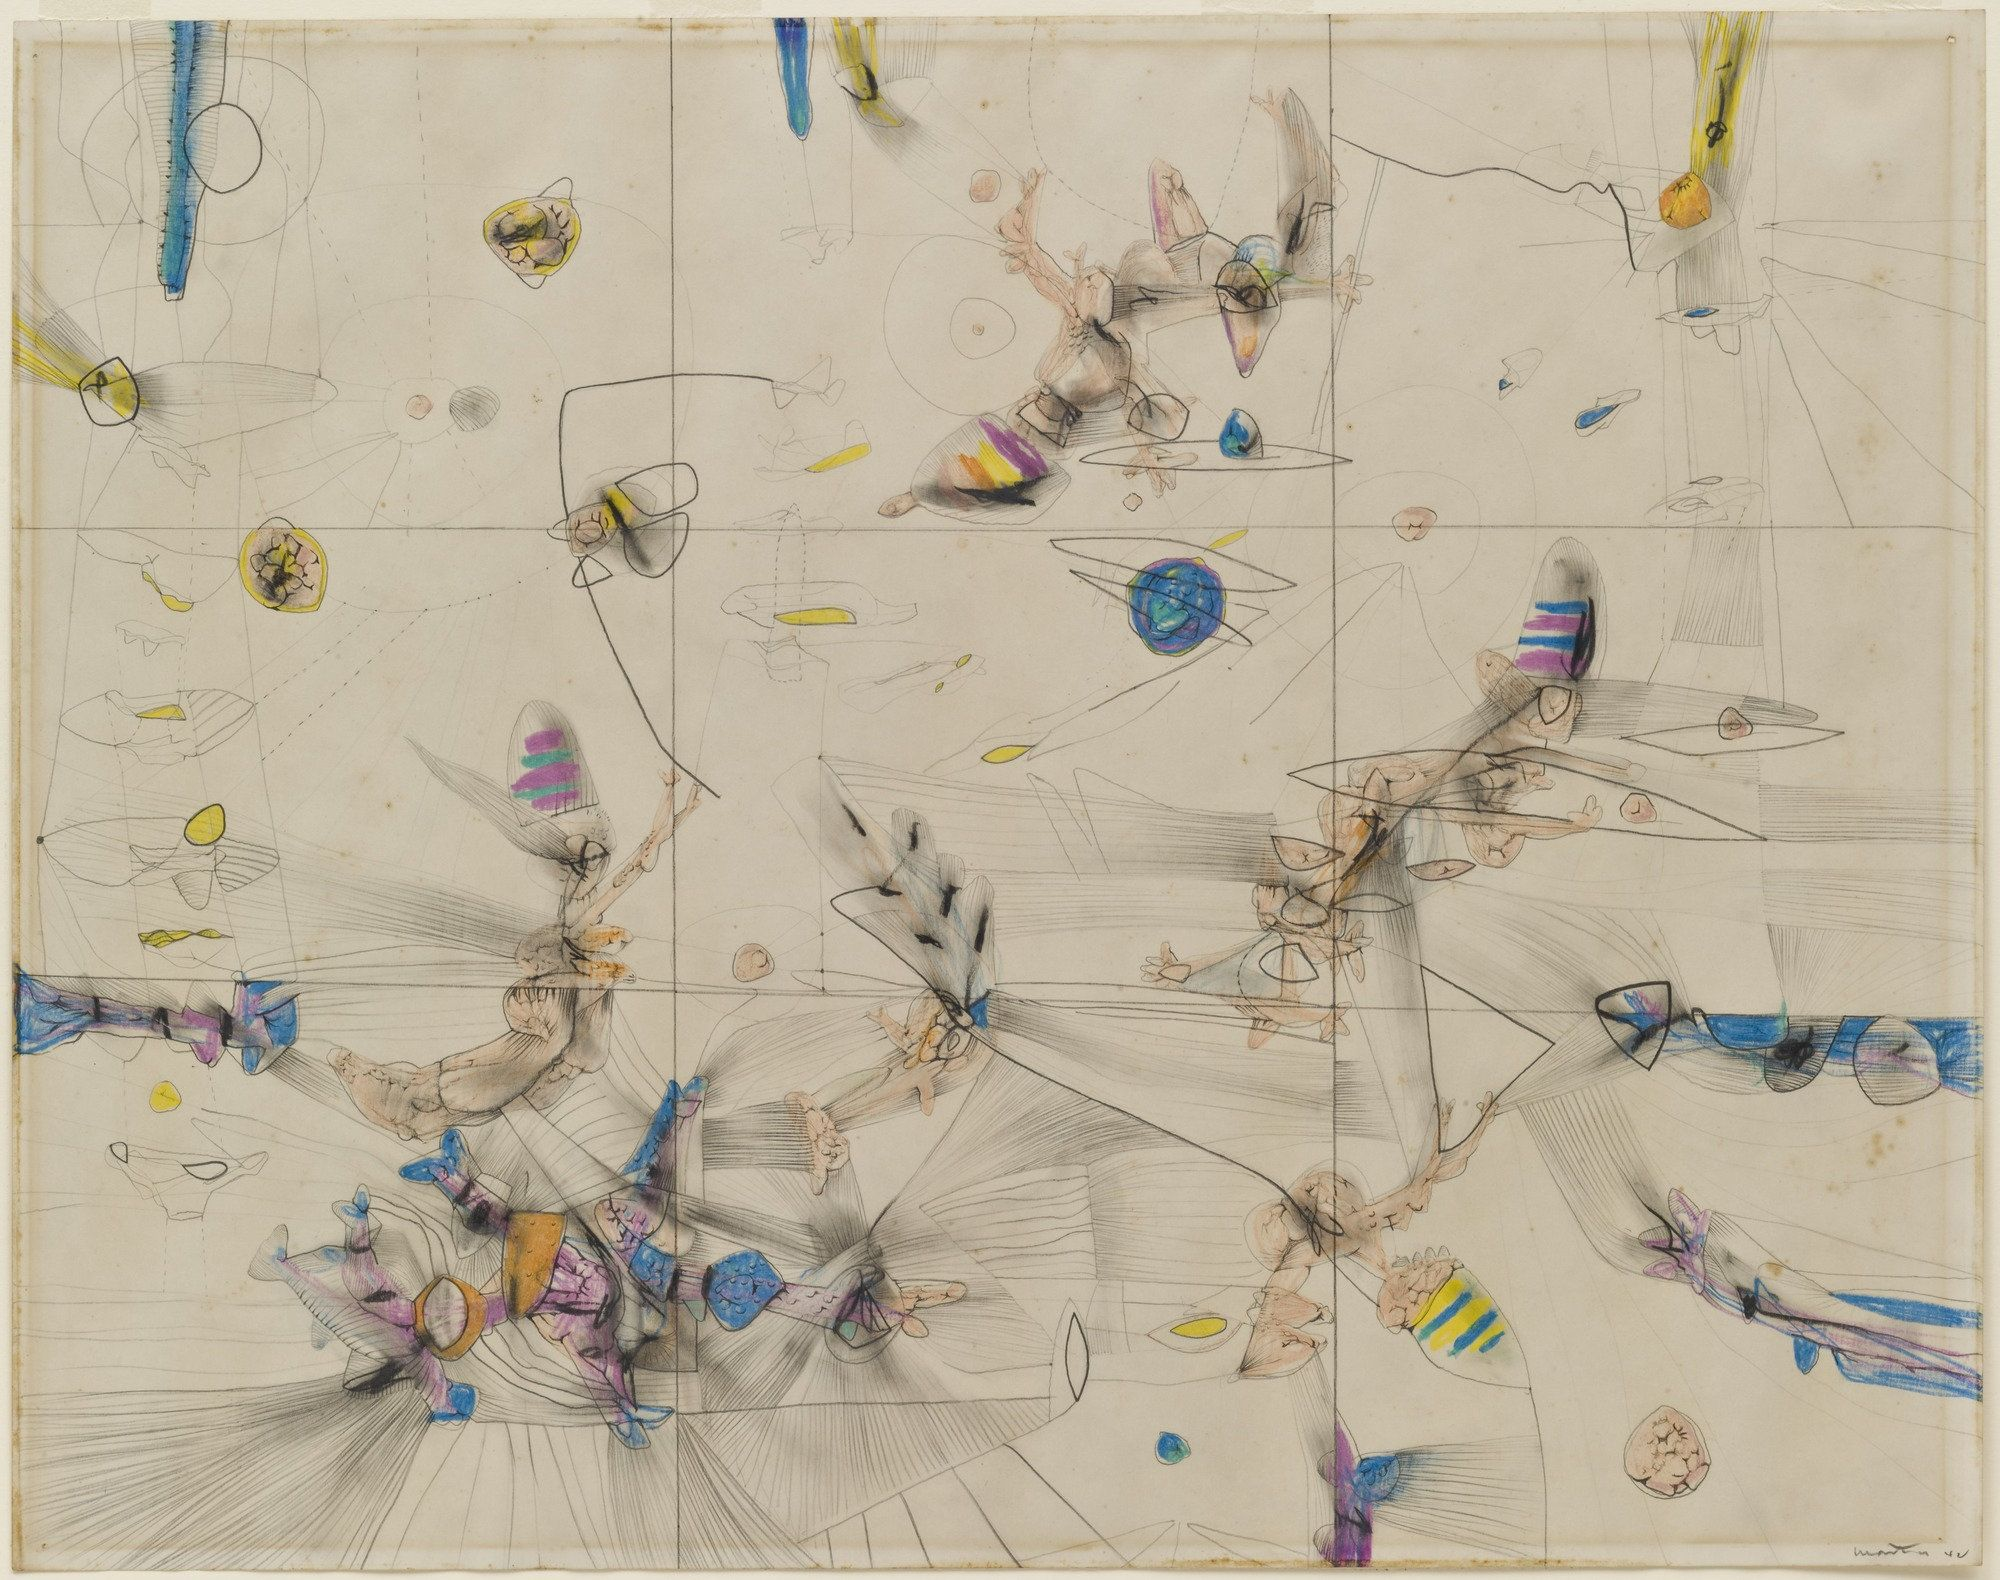 """Roberto Matta. Untitled. 1942. Crayon and pencil on paper. 19 x 24"""" (48.4 x 61.2 cm). James Thrall Soby Bequest. 197.1982. © 2016 Artists Rights Society (ARS), New York / ADAGP, Paris. Drawings and Prints"""